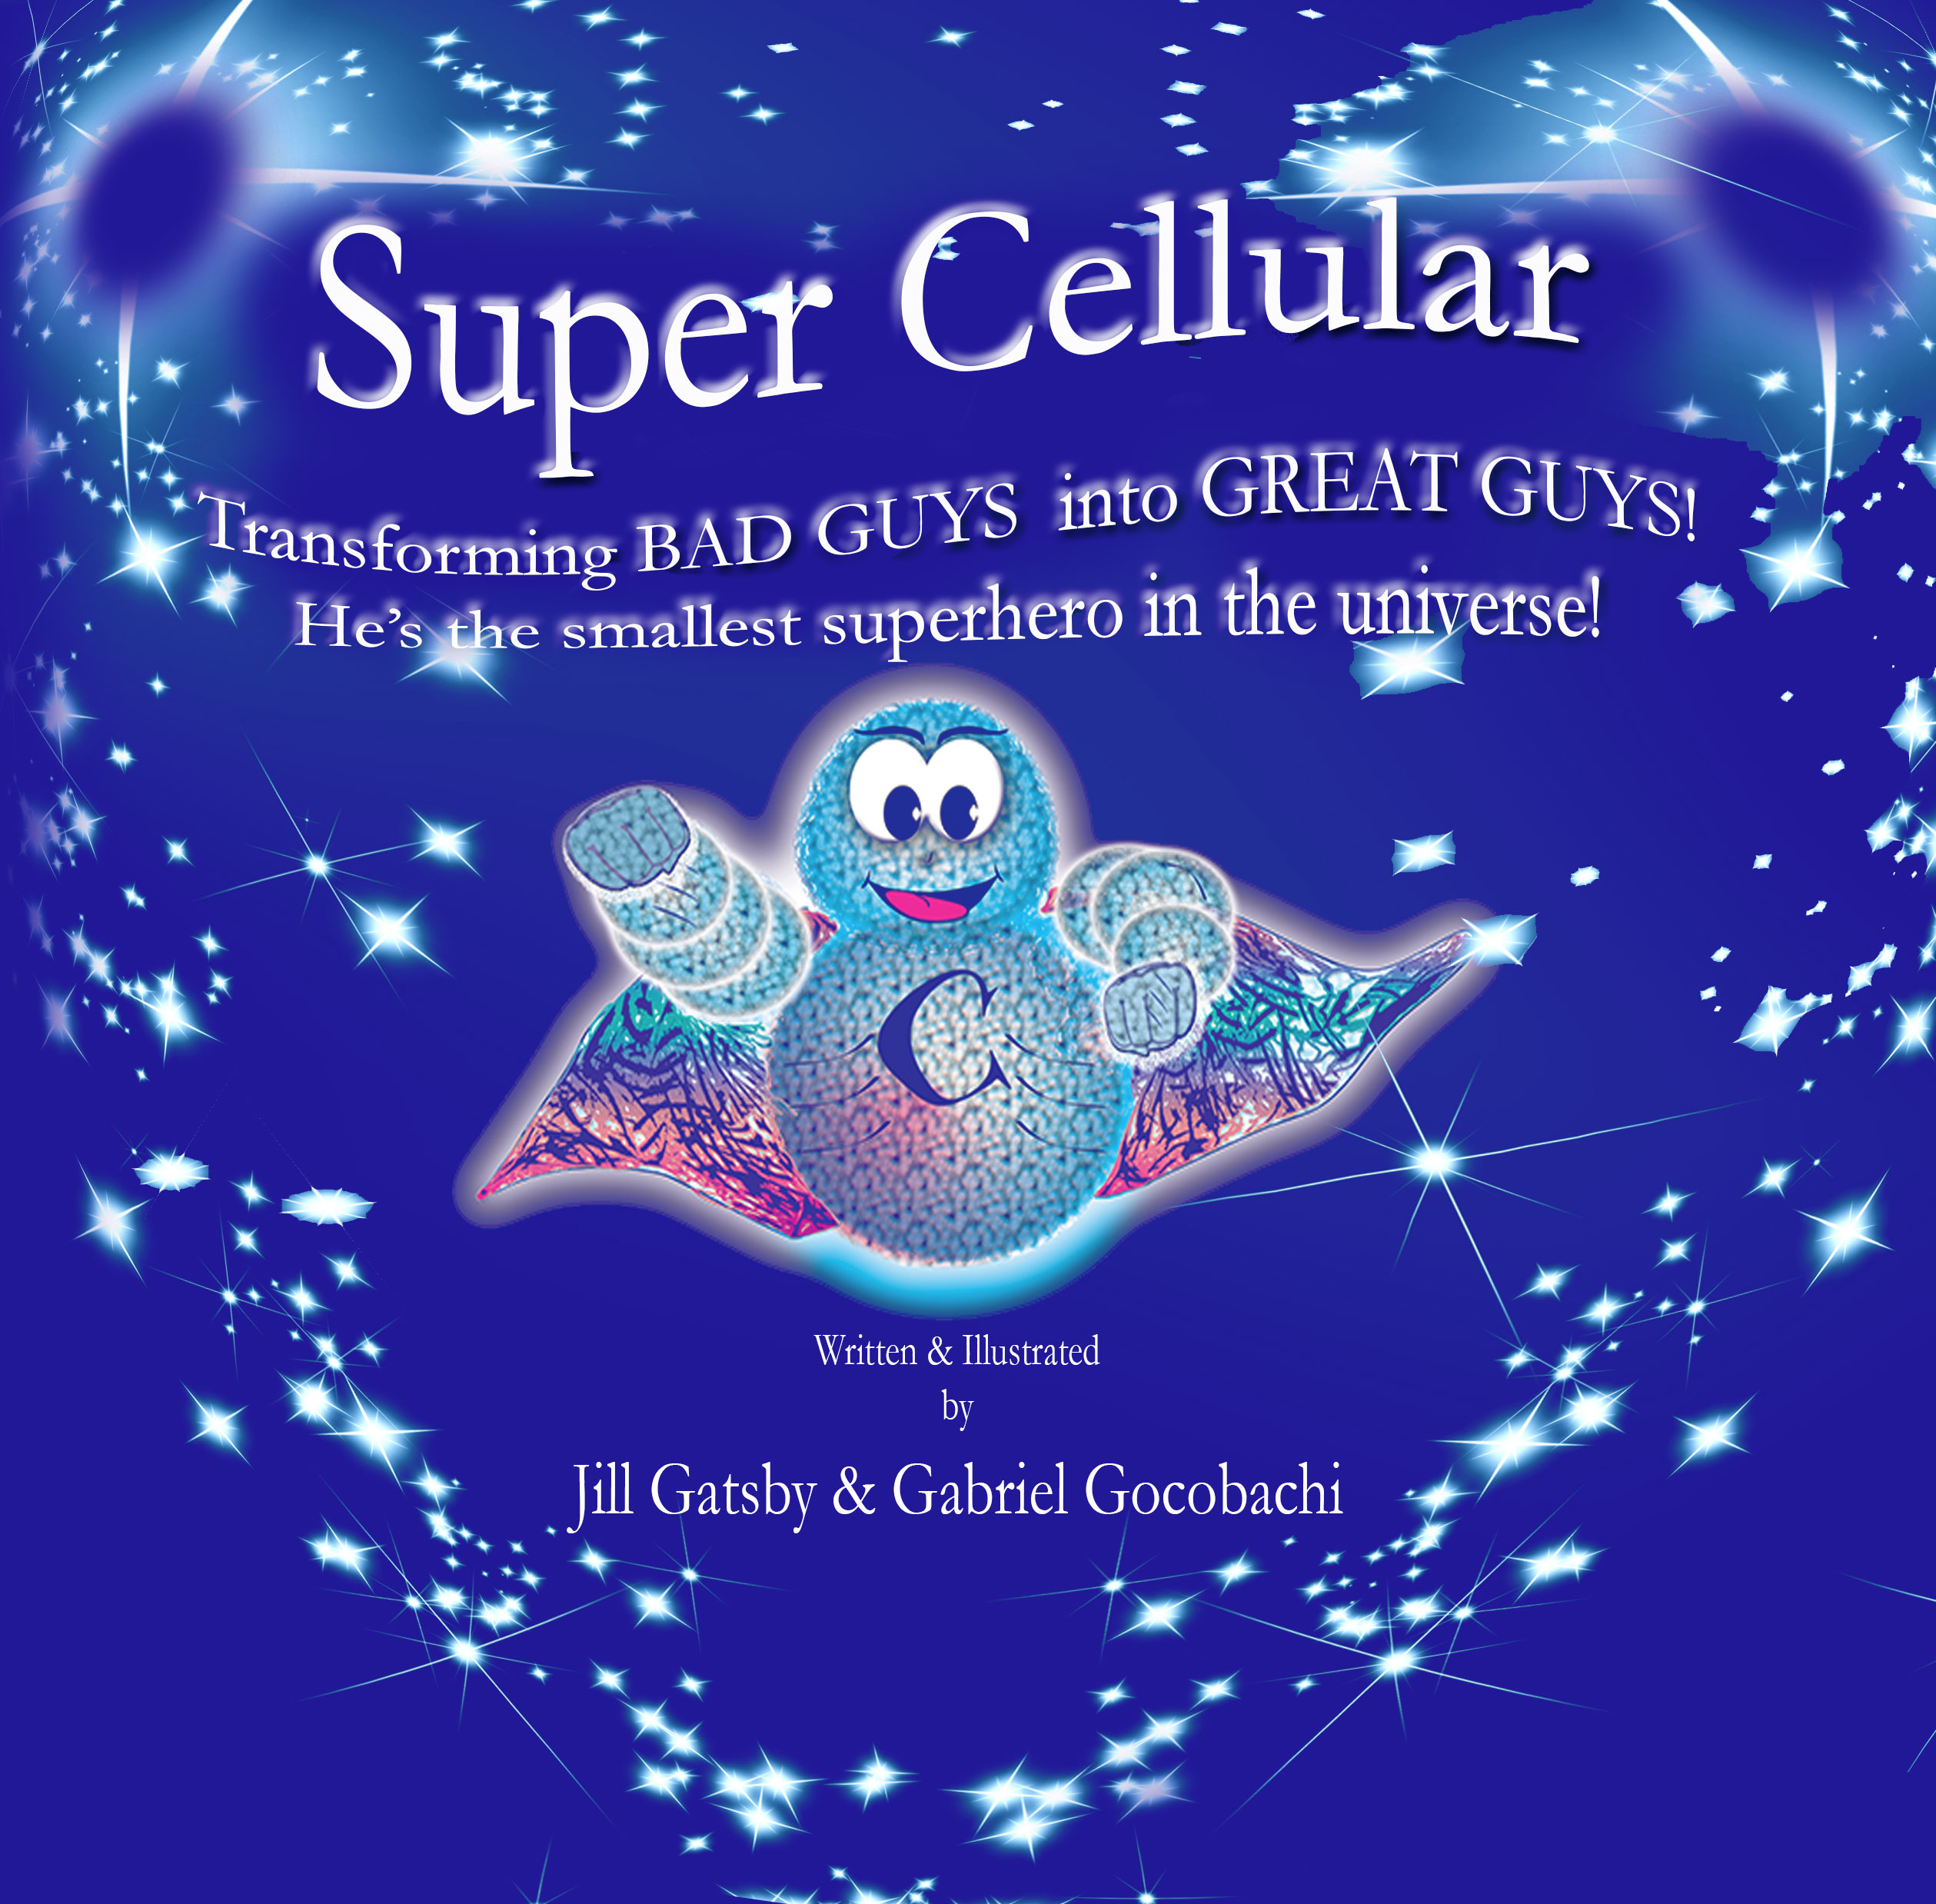 Super Cellular!  Get the book today!